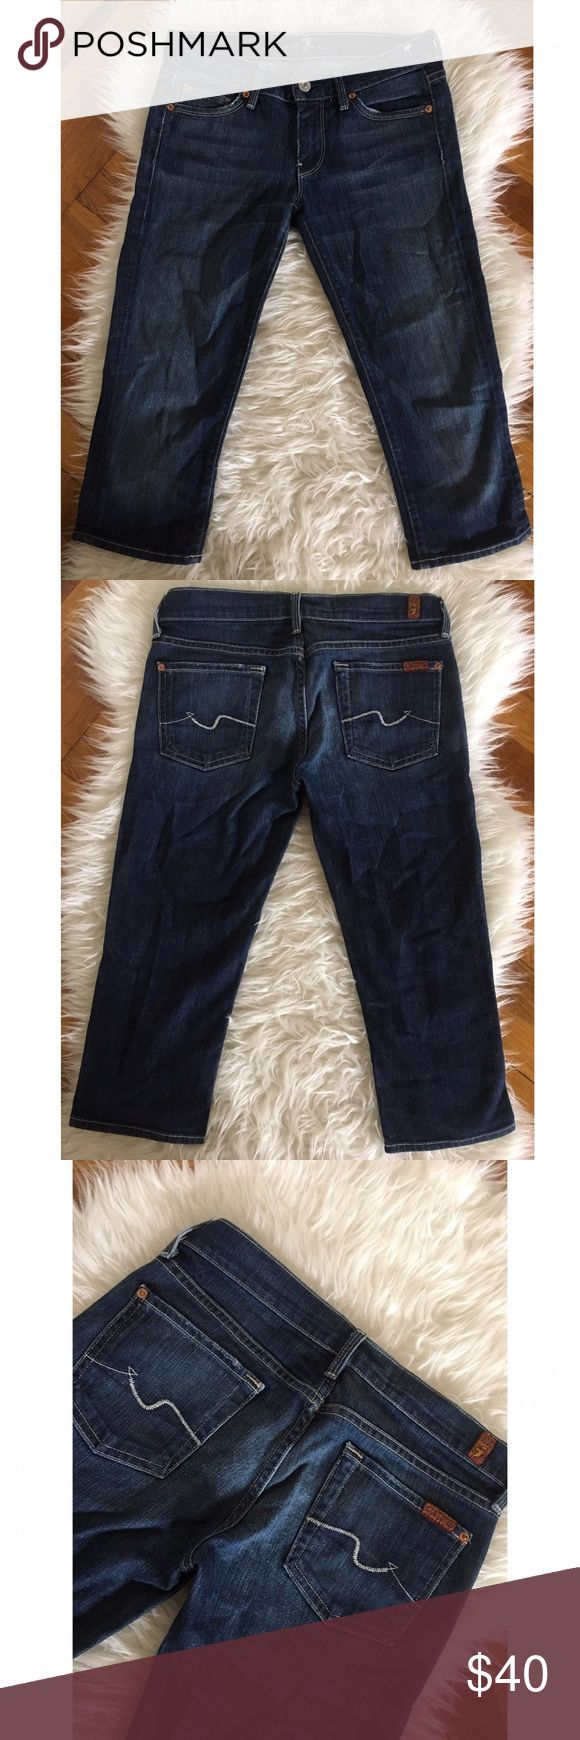 7 for all mankind jean capri shorts size 26 Great condition. No trades. Size 26. Dark blue wash.  98% cotton 2% Lycra  Made in the USA 7 For All Mankind Jeans Ankle & Cropped